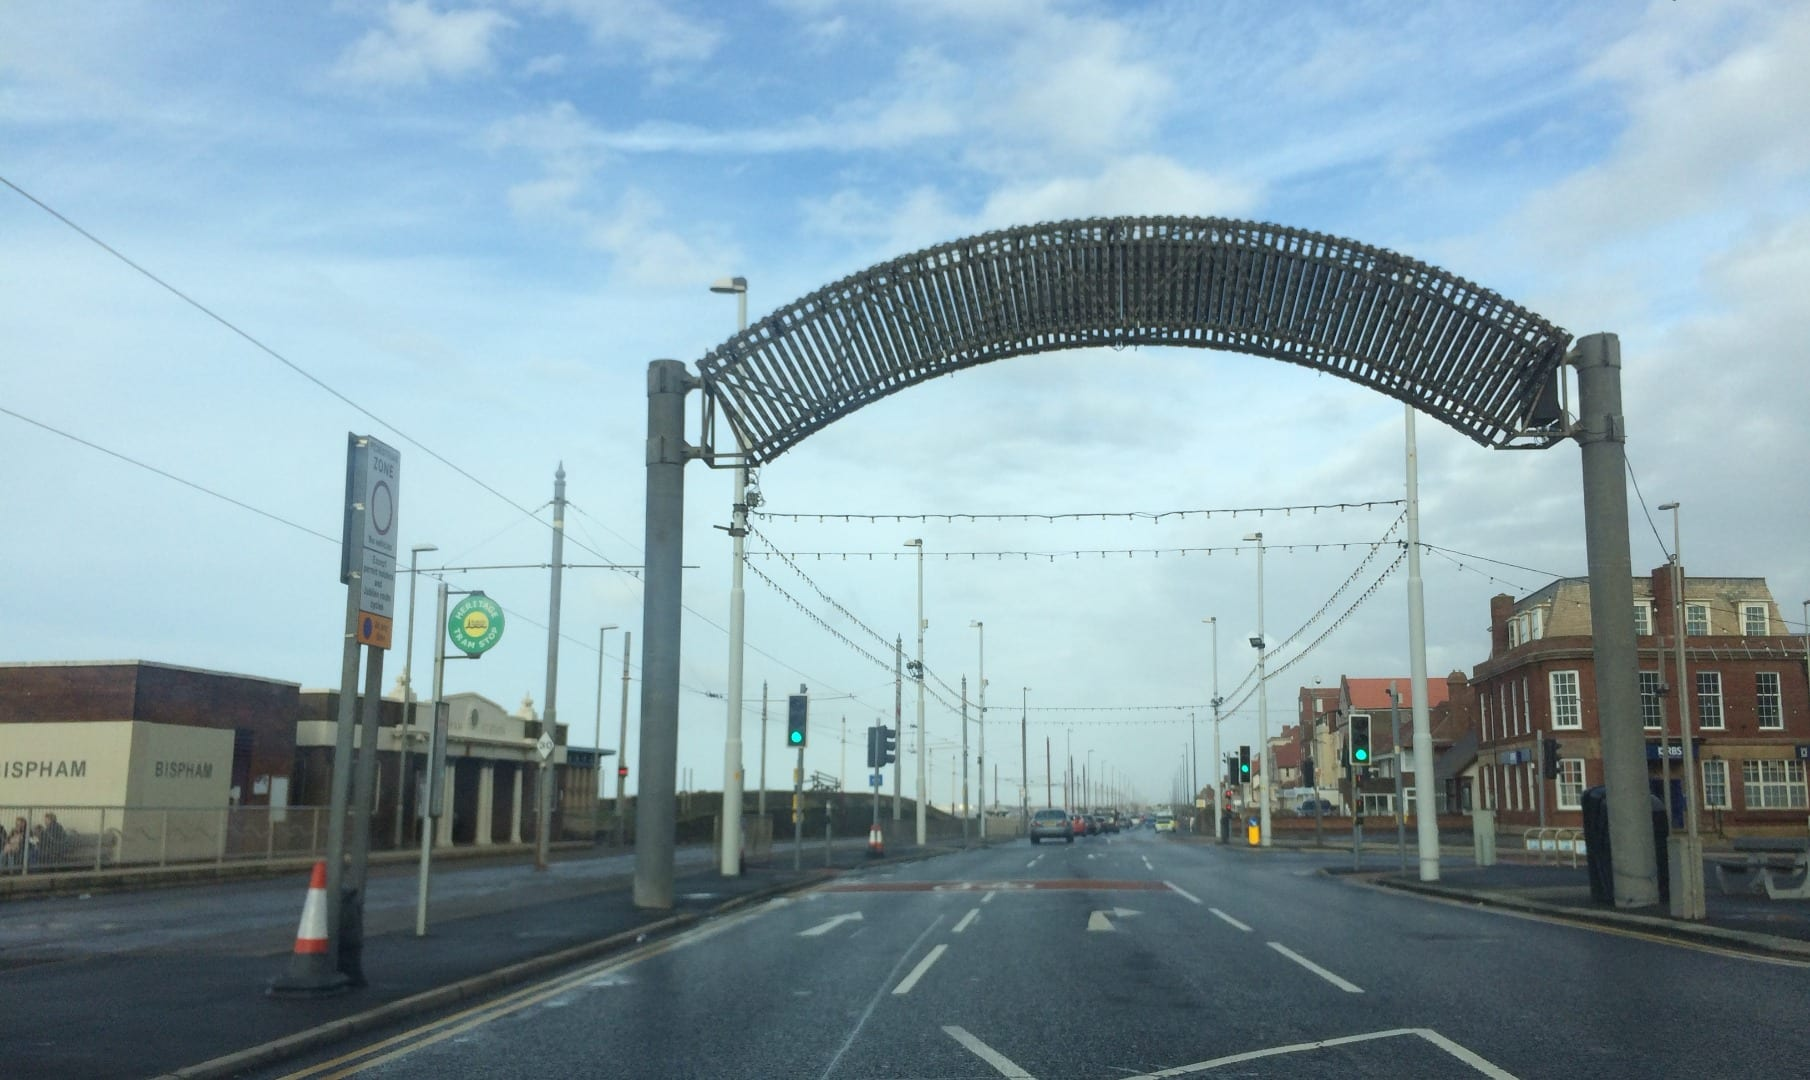 Bispham welcome arch at Redbank Road, a landmark on the Fylde Coast seafront